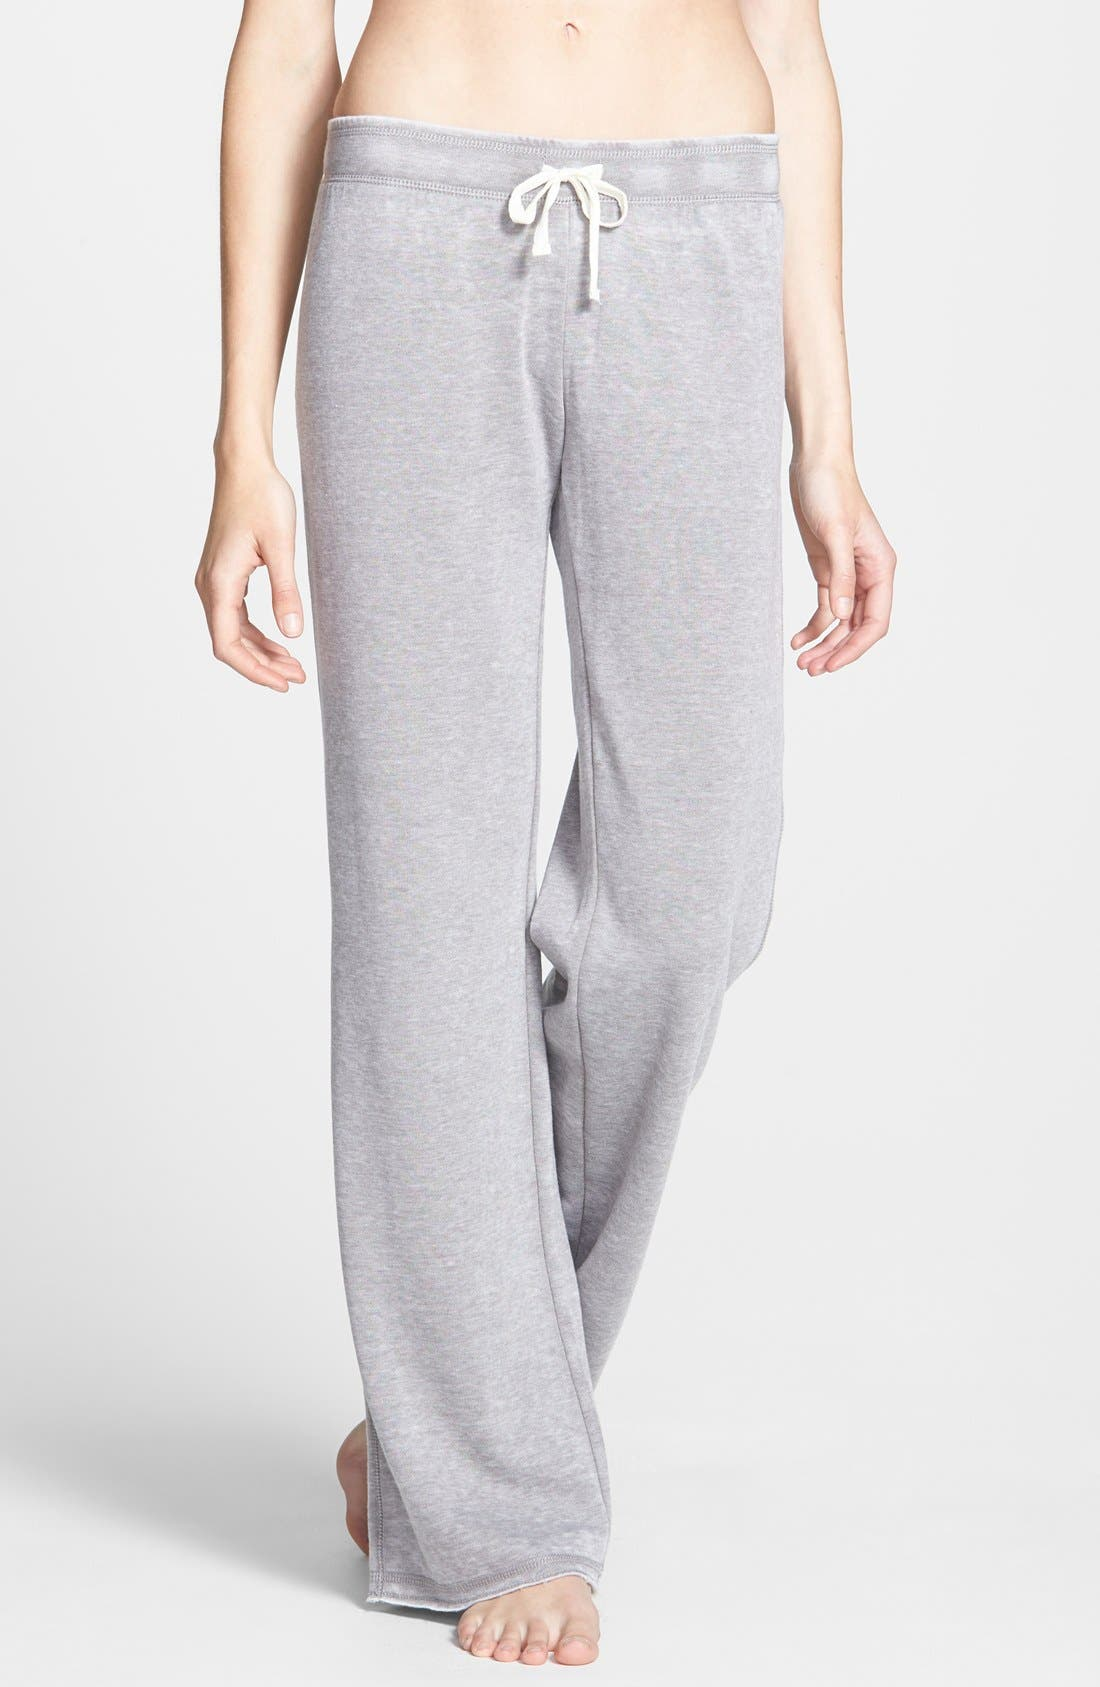 Main Image - BP. Undercover 'Gym Class' Sweatpants (Juniors) (Online Only)